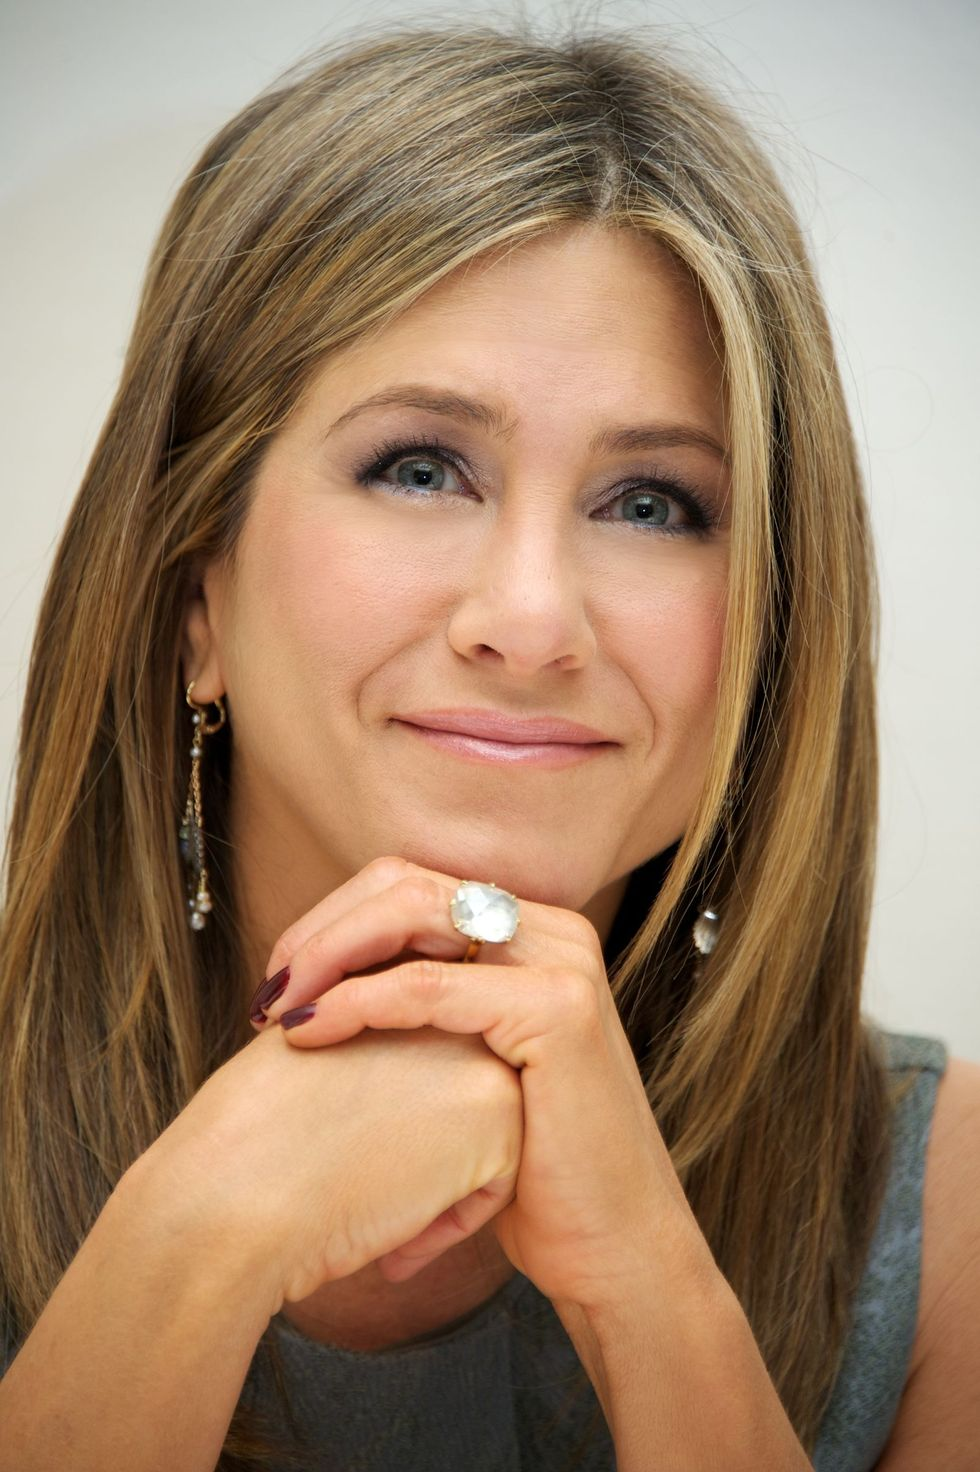 """Jennifer Aniston Jen has never hid the fact that she's not willing to fit into society's molds for women . """"I don't have this sort of checklist of things that have to be done and if they're not checked then I've failed some part of my feminism or my being a woman or my worth or my value as a woman…Y'know, I've birthed a lot of things. I feel like I've mothered many things. And I don't think it's fair to put that pressure on people,"""" she told the Today Show in 2014."""